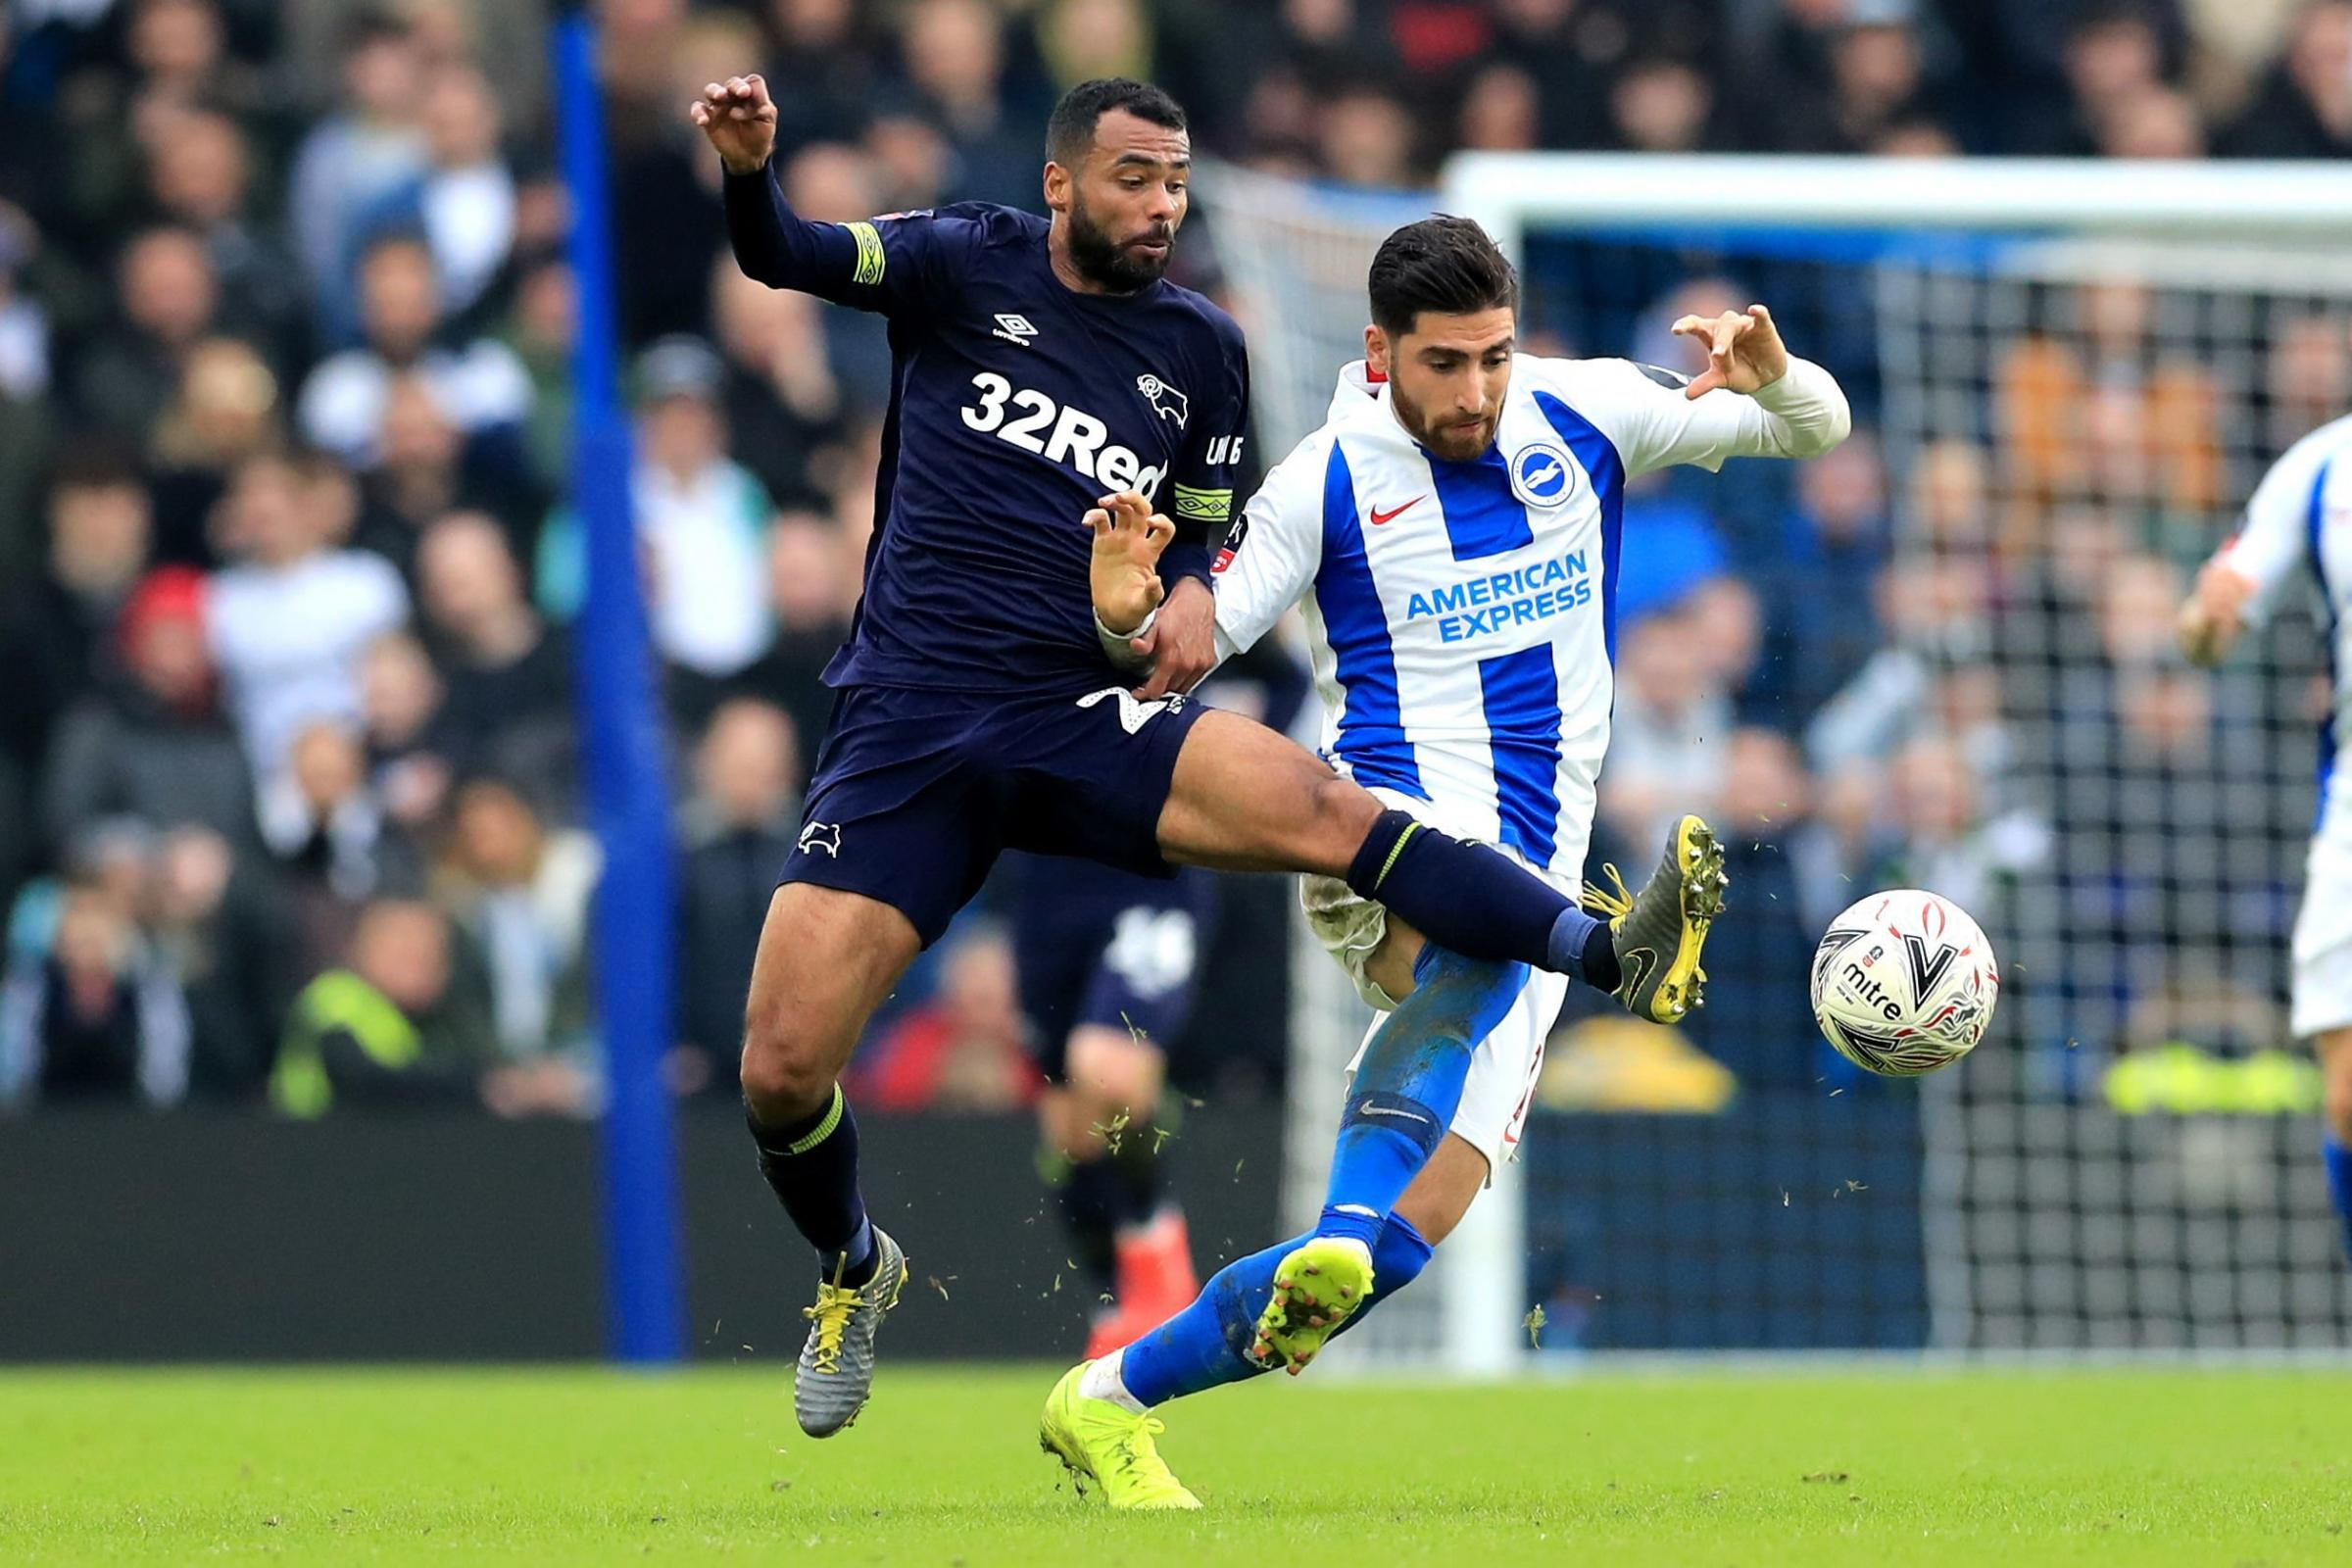 Ali J will profit from constant time at Albion says boss